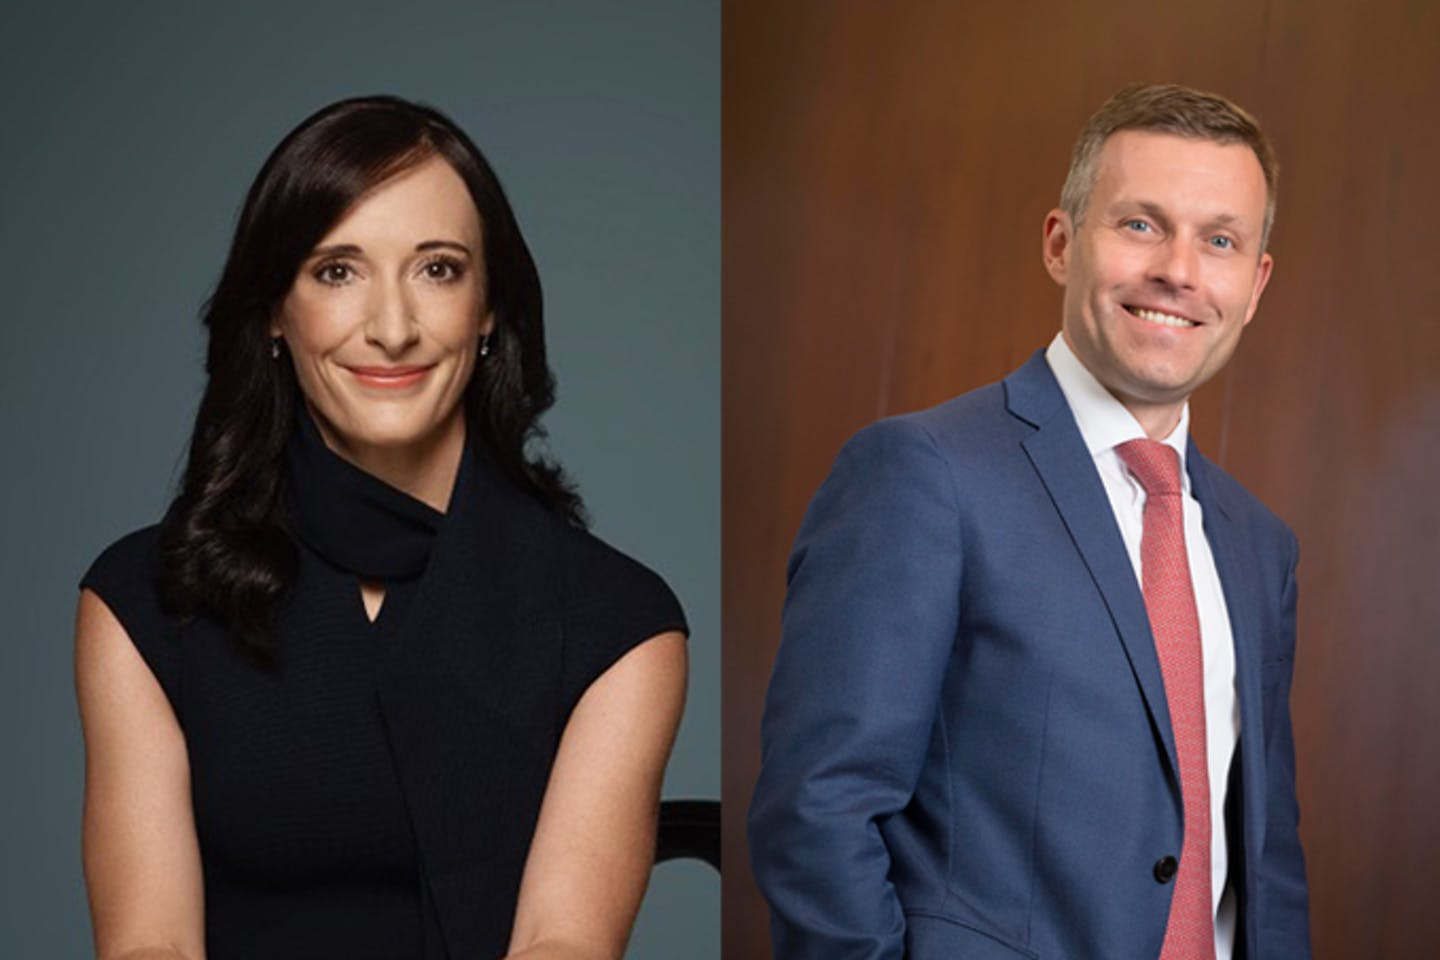 Co-heading the APAC division of BlackRock Sustainable Investing are Geir Espeskog, who moves over from BlackRock'siShares Asia Pacific distribution team, and Emily Woodland, who joins from AMP Capital, where she was head of sustainable investment, global public markets.